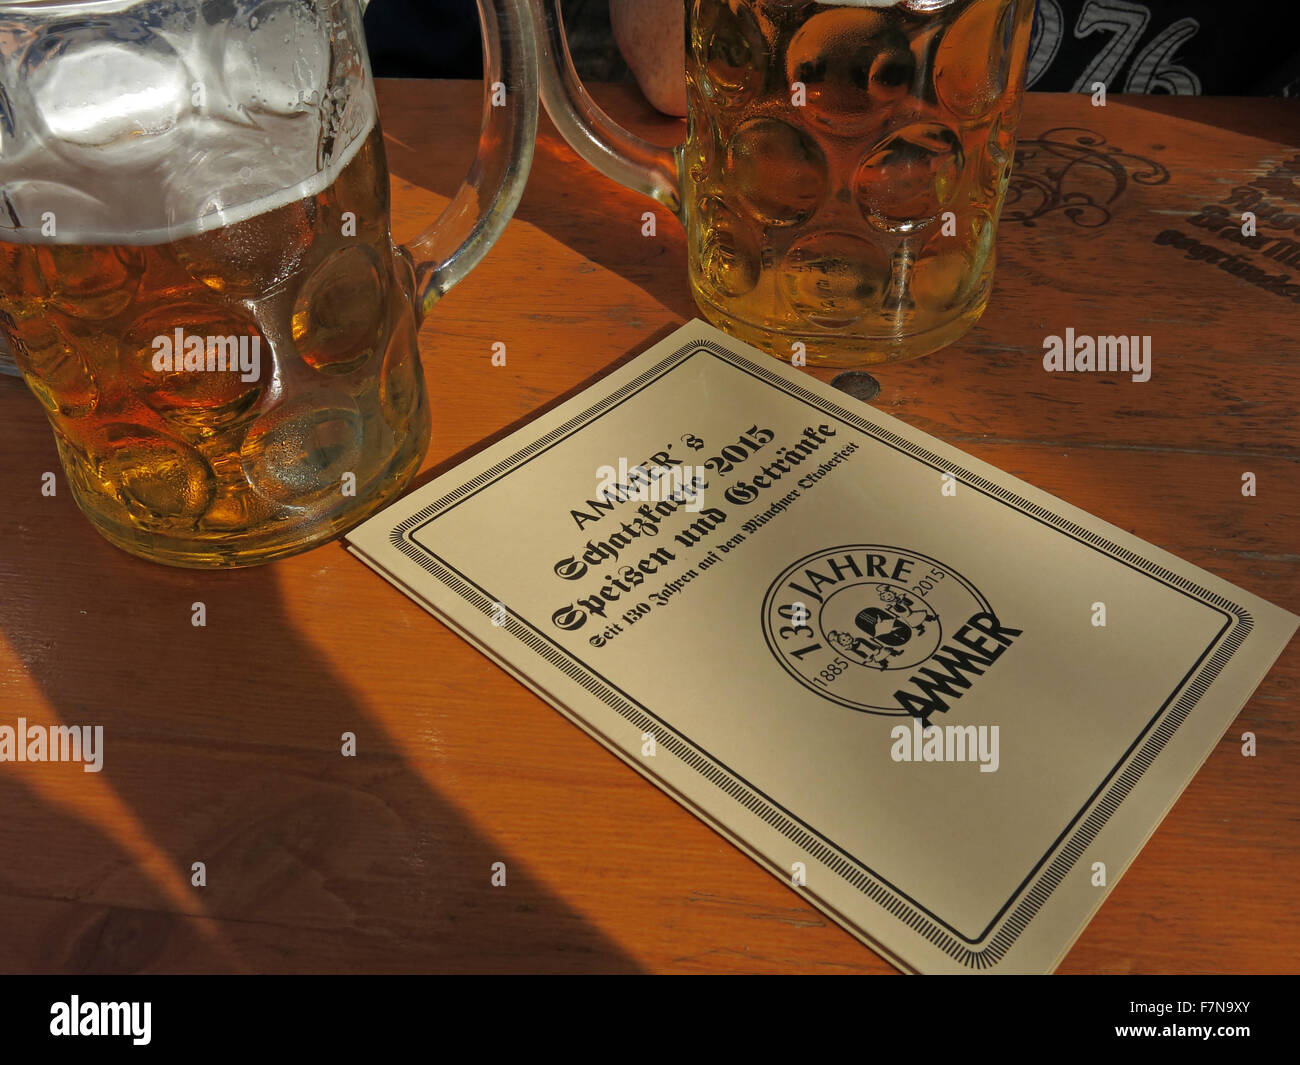 Ammer bier tent menu for food & drink,Oktoberfest,Bavaria,Munich,Germany with liter stein of beer - Stock Image